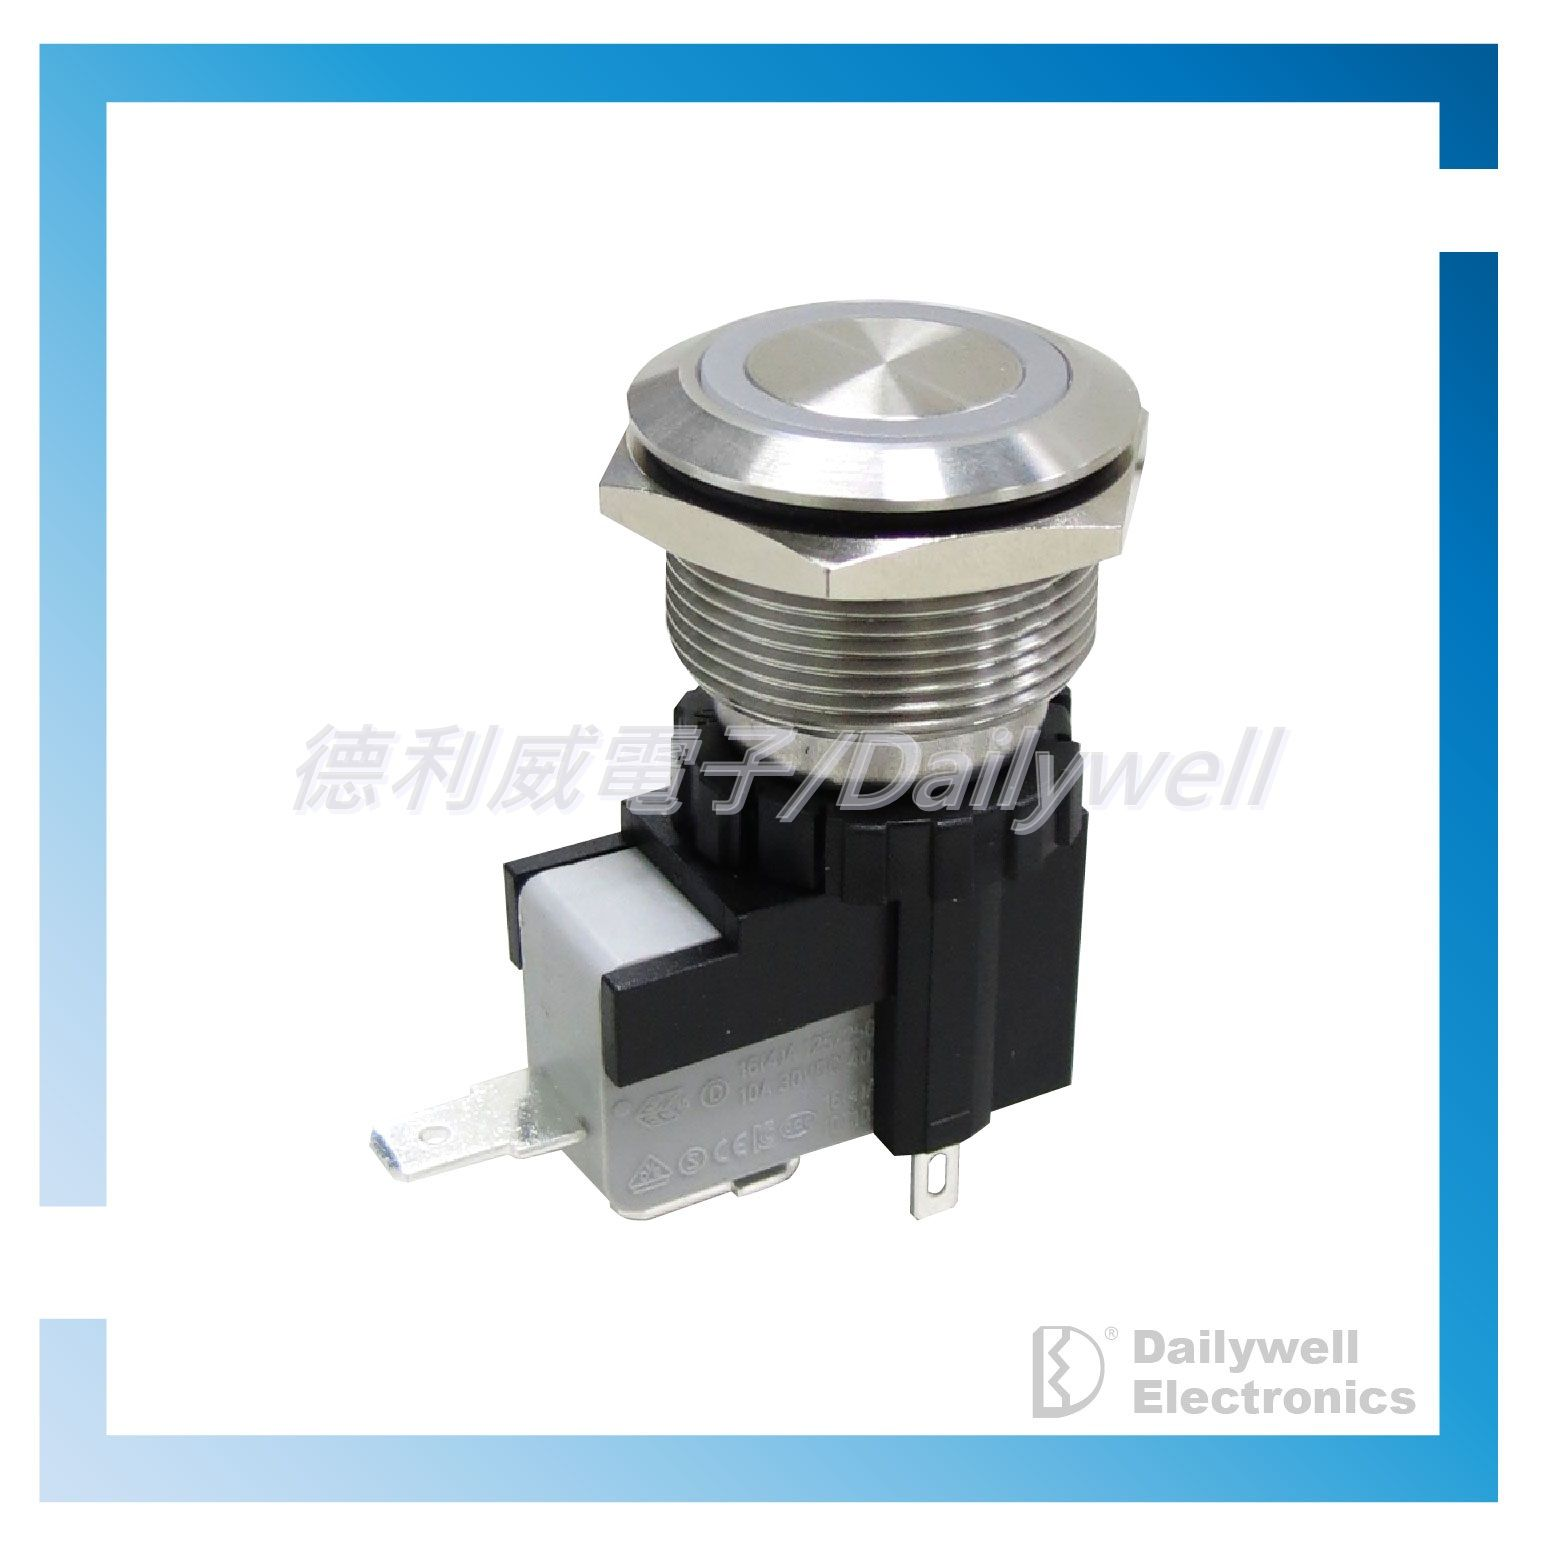 22mm High Current Anti-vandal Pushbutton Switches